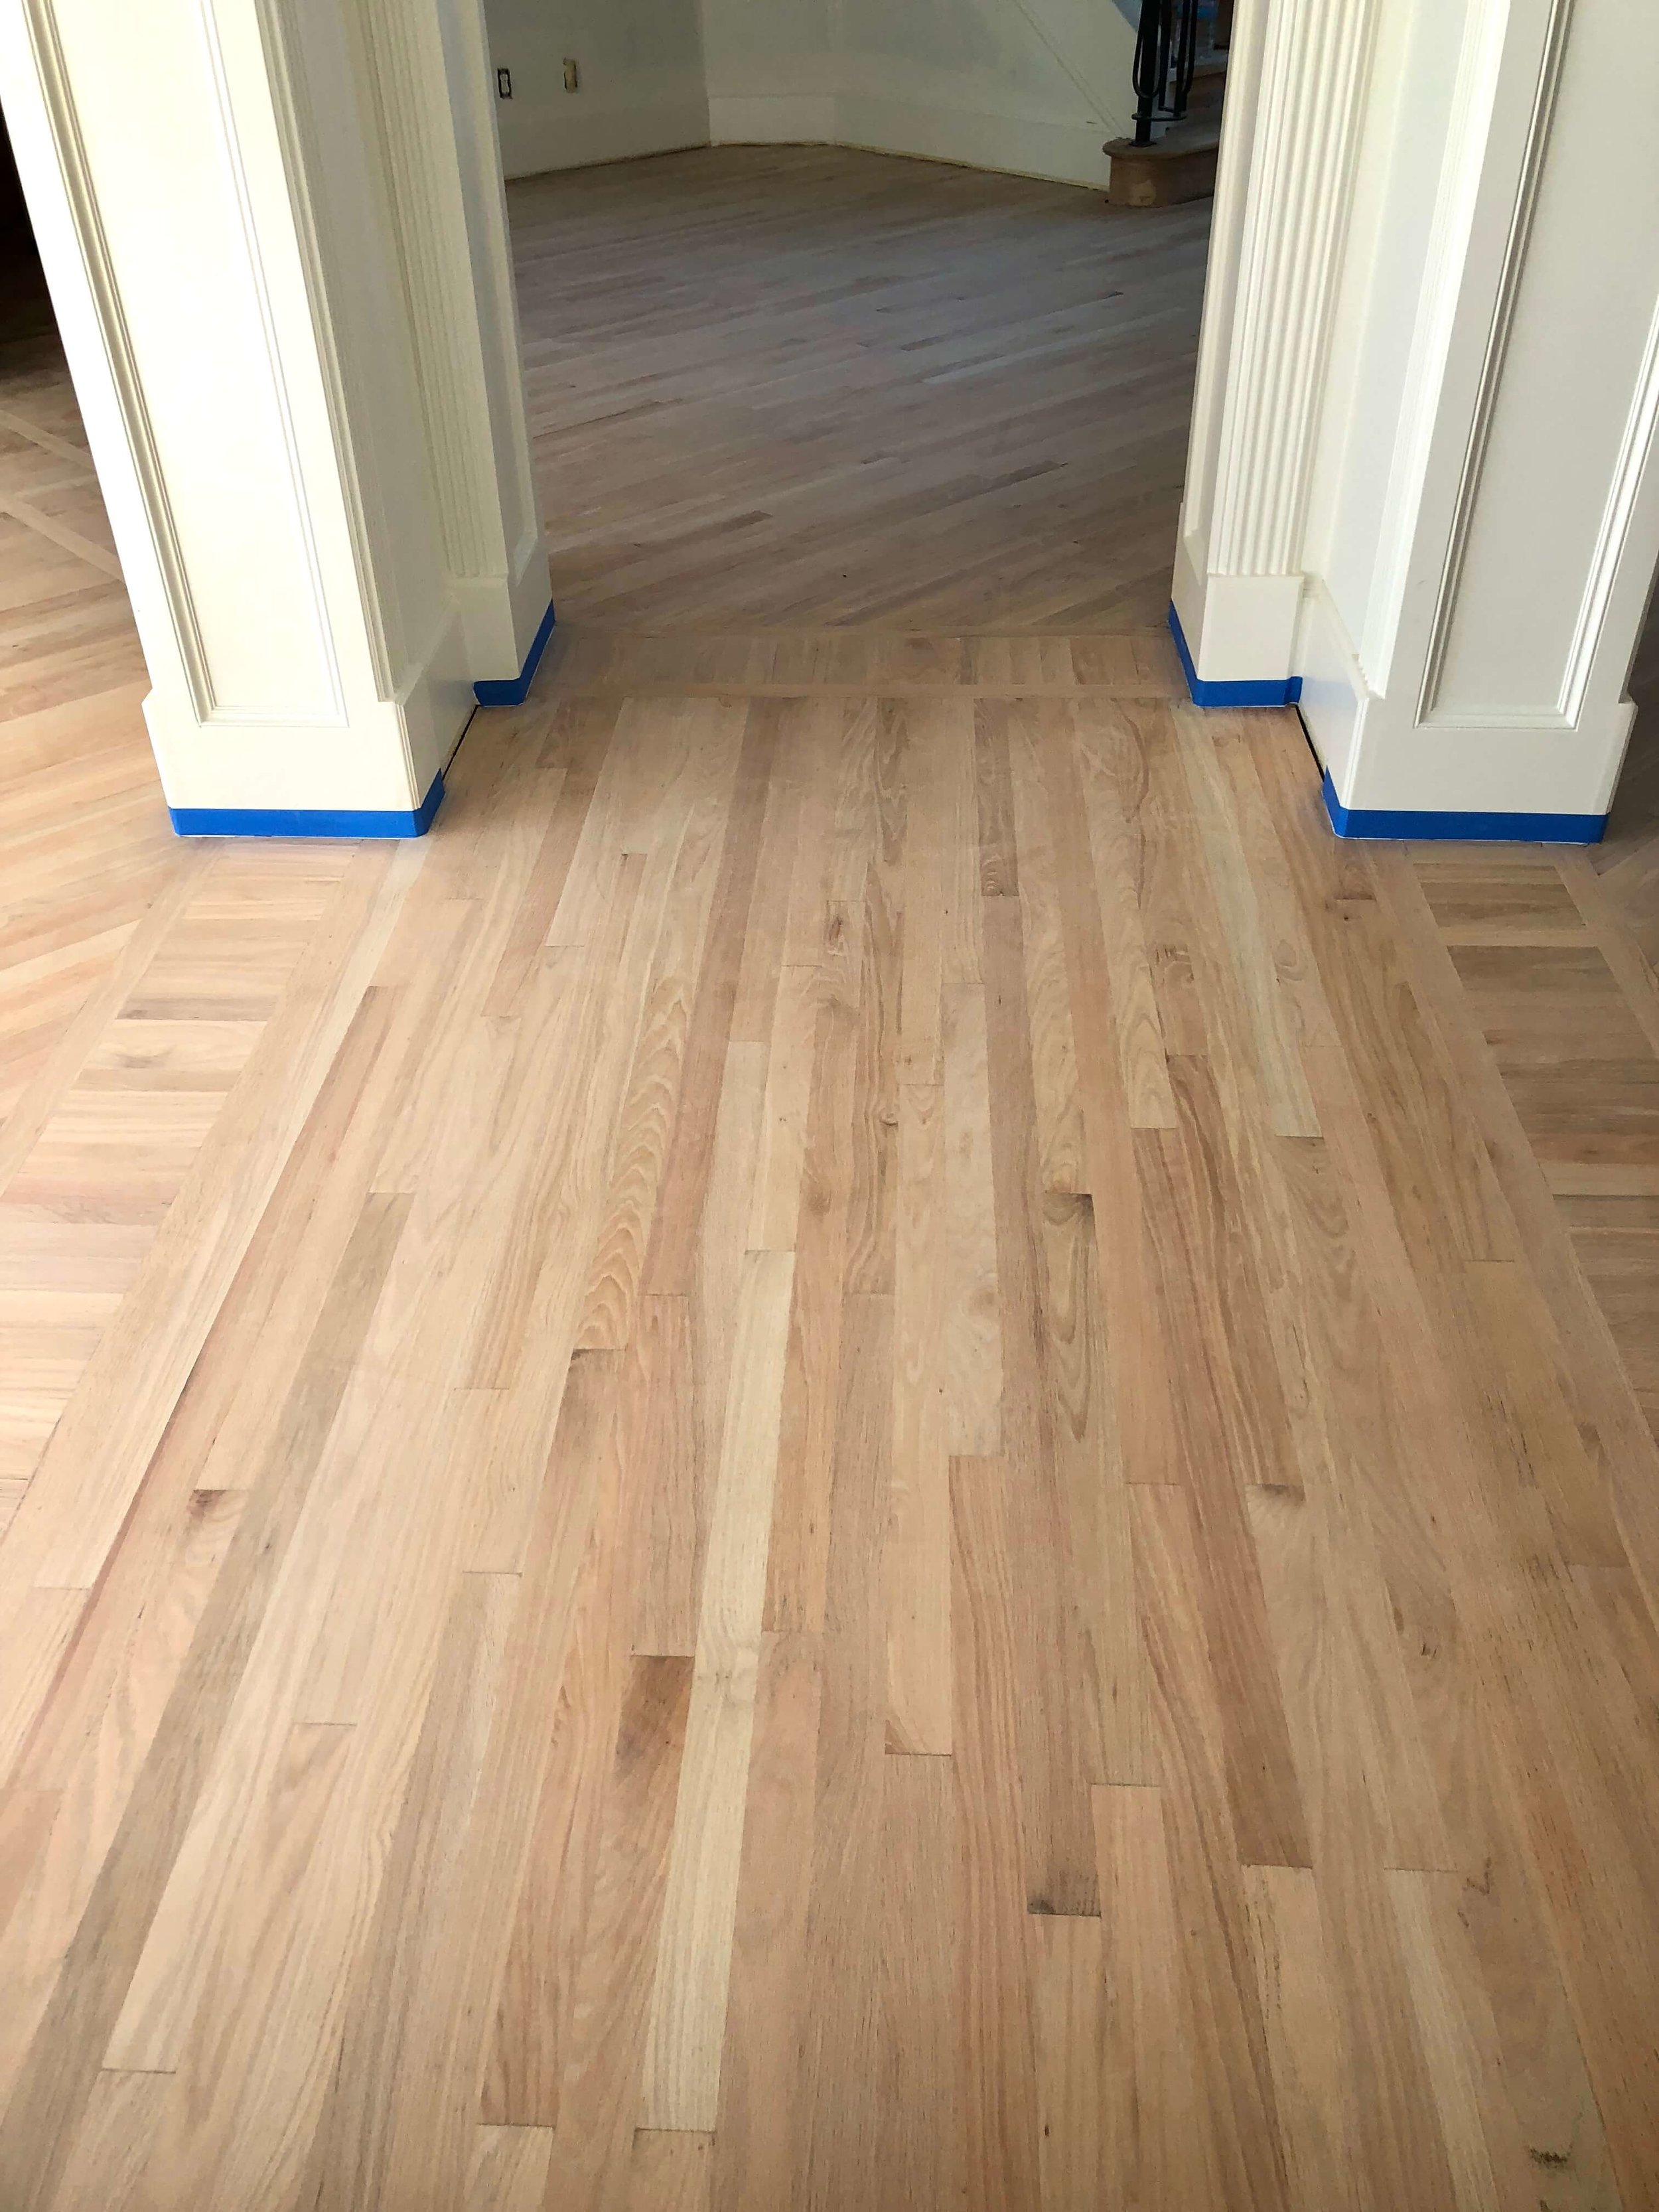 Sanded and stripped oak flooring